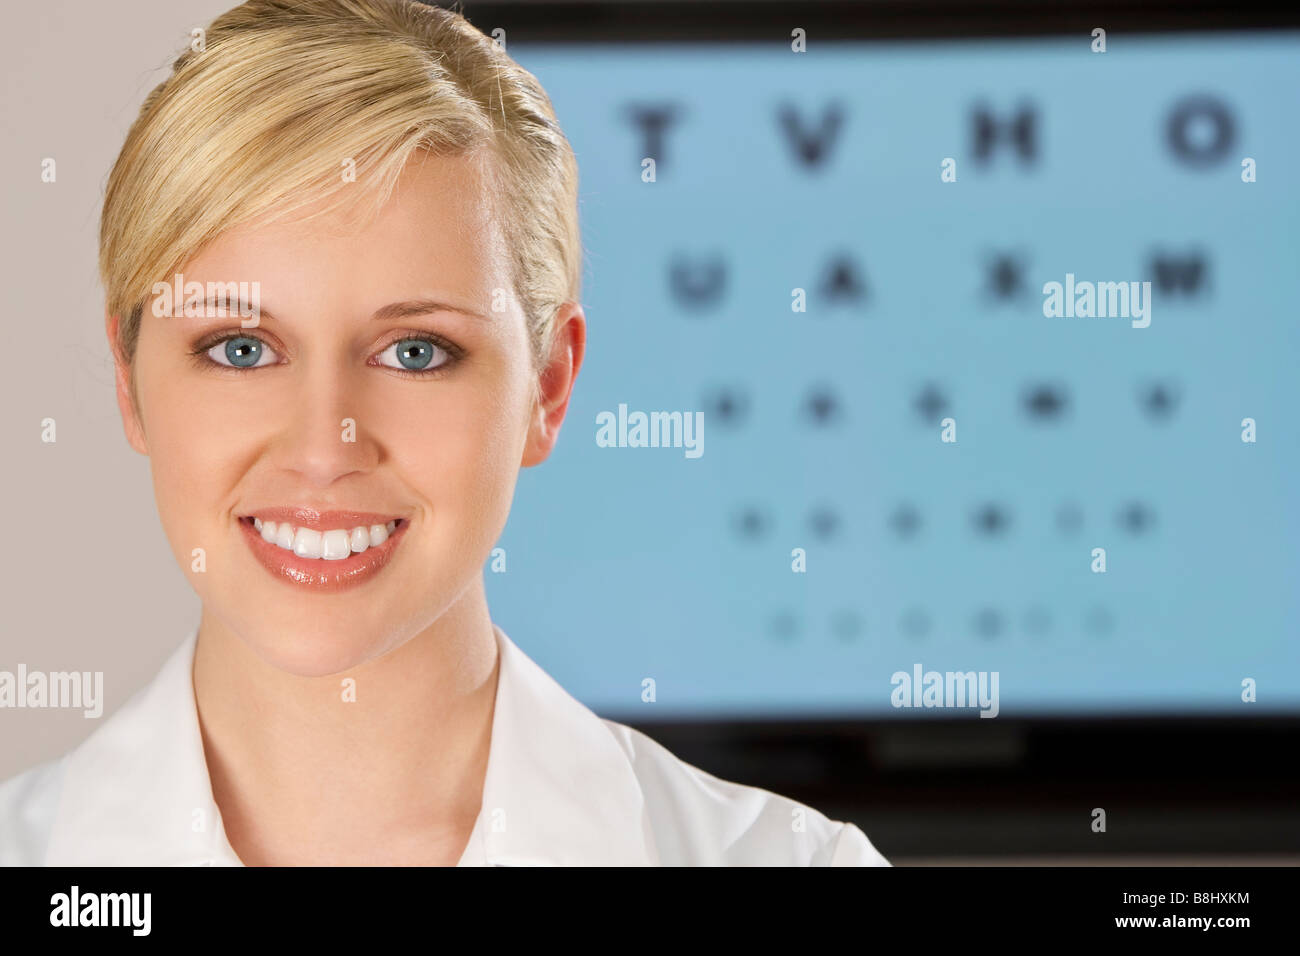 A beautiful female optician shot with an electronic eye test chart out of focus behind her - Stock Image